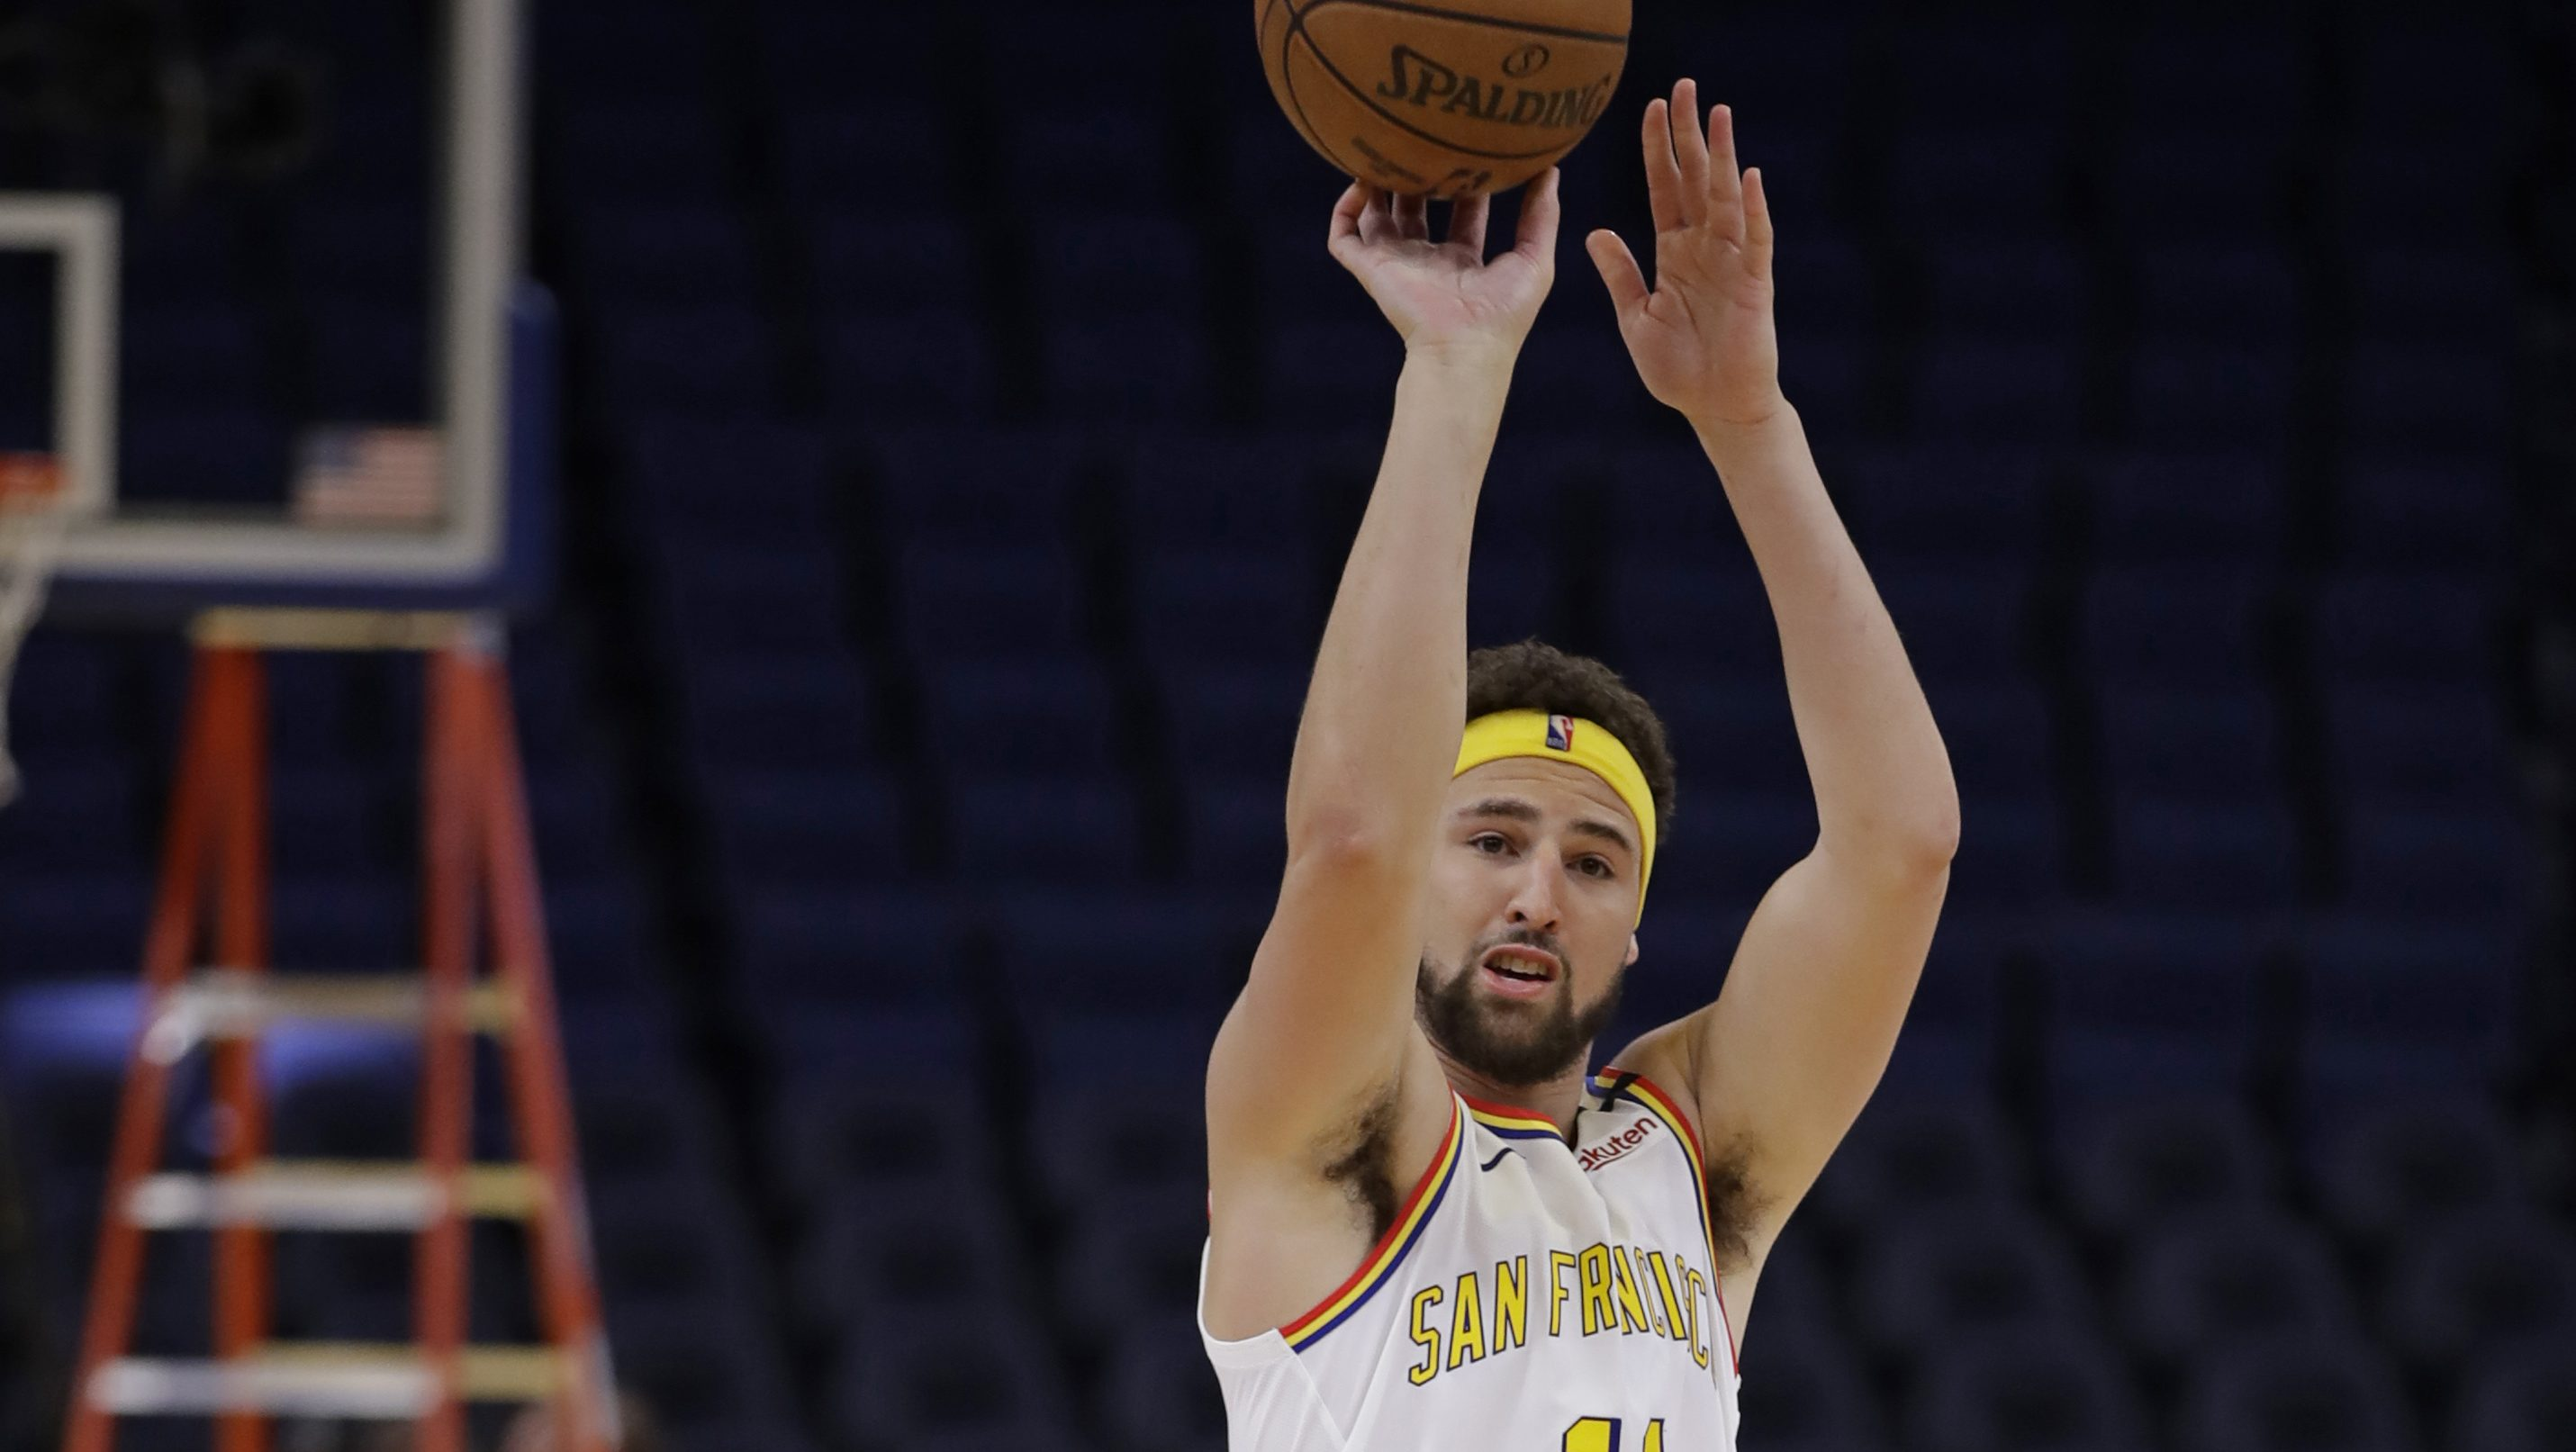 Here's video of Klay Thompson getting up shots in an empty Chase Center